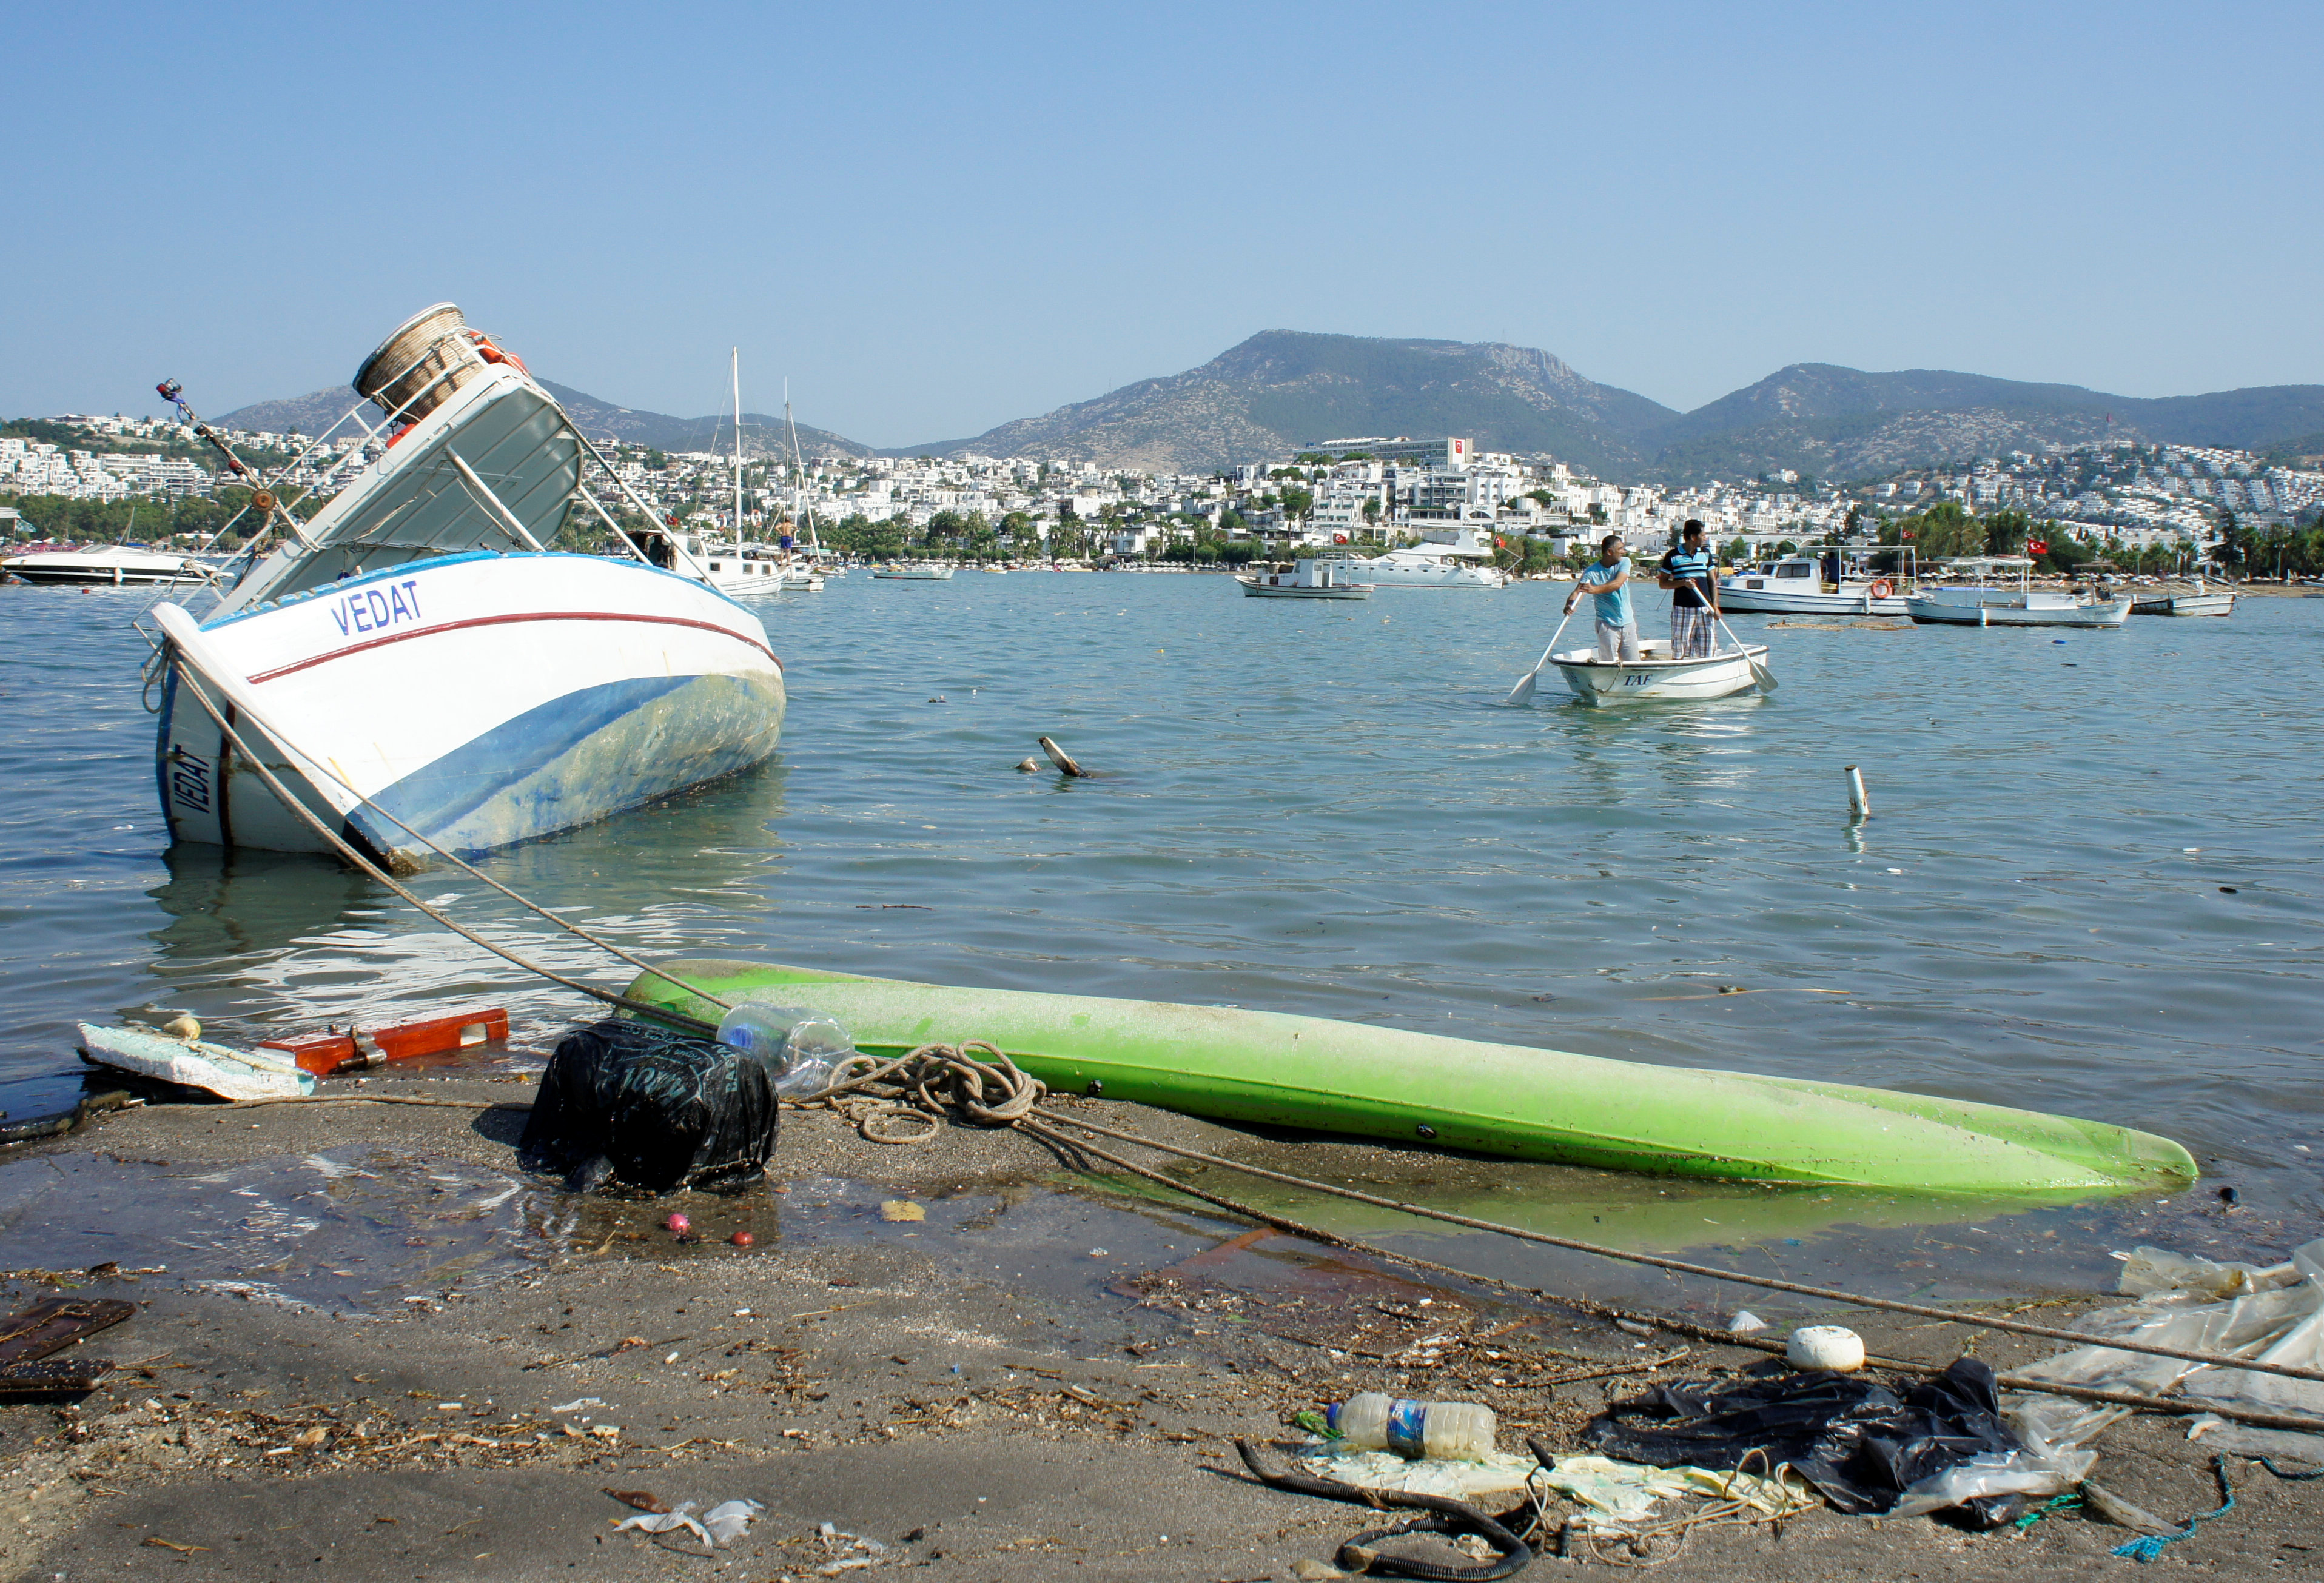 Damaged boats are seen after an earthquake and a tsunami in the resort town of Gumbet in Mugla province, Turkey, July 21, 2017.